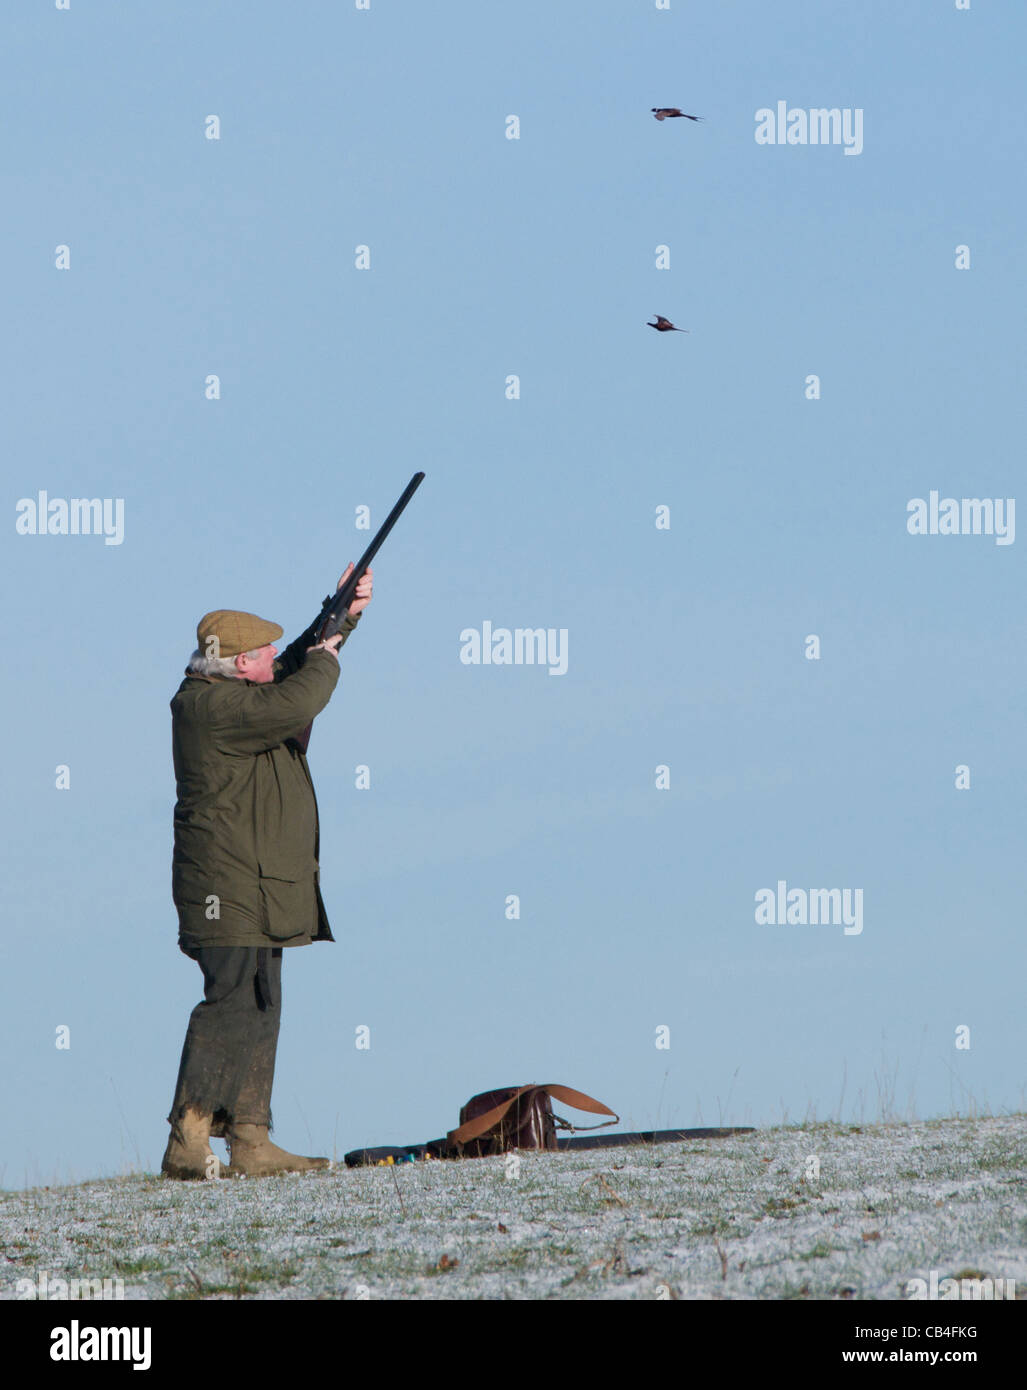 Shooting Uk Pheasant Stock Photos & Shooting Uk Pheasant Stock ...